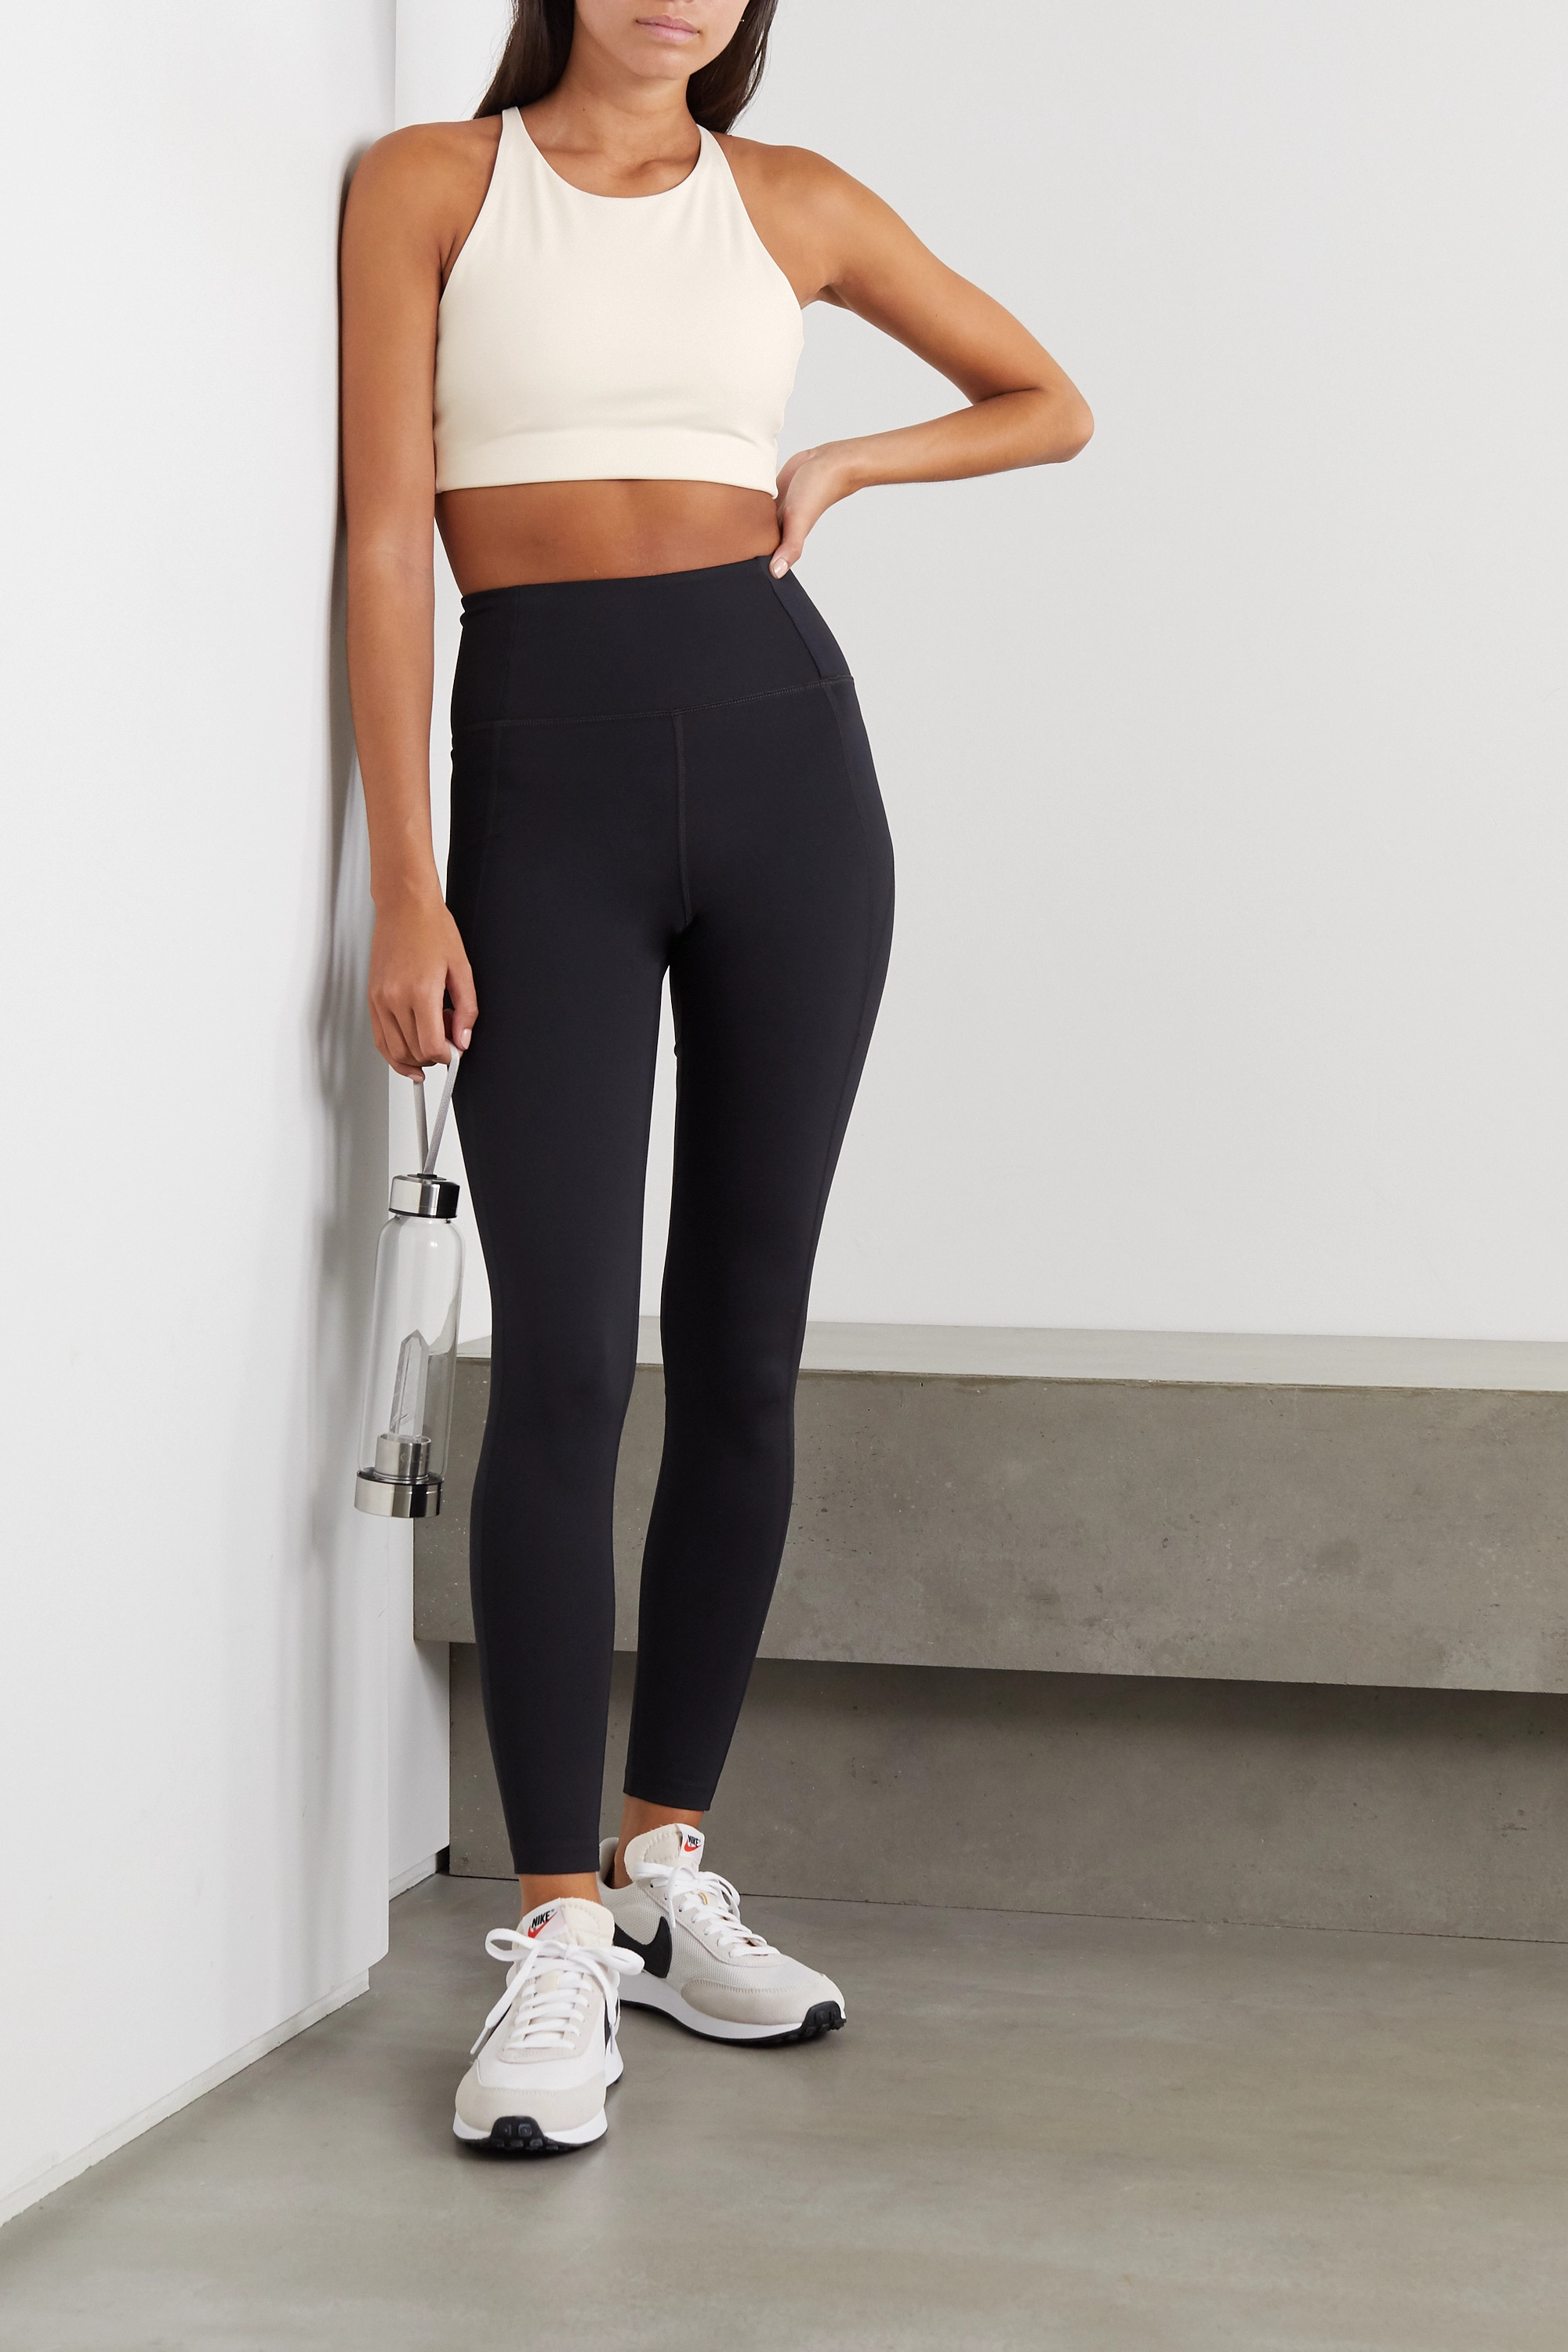 Girlfriend Collective Topanga Sport-BH aus Stretch-Material